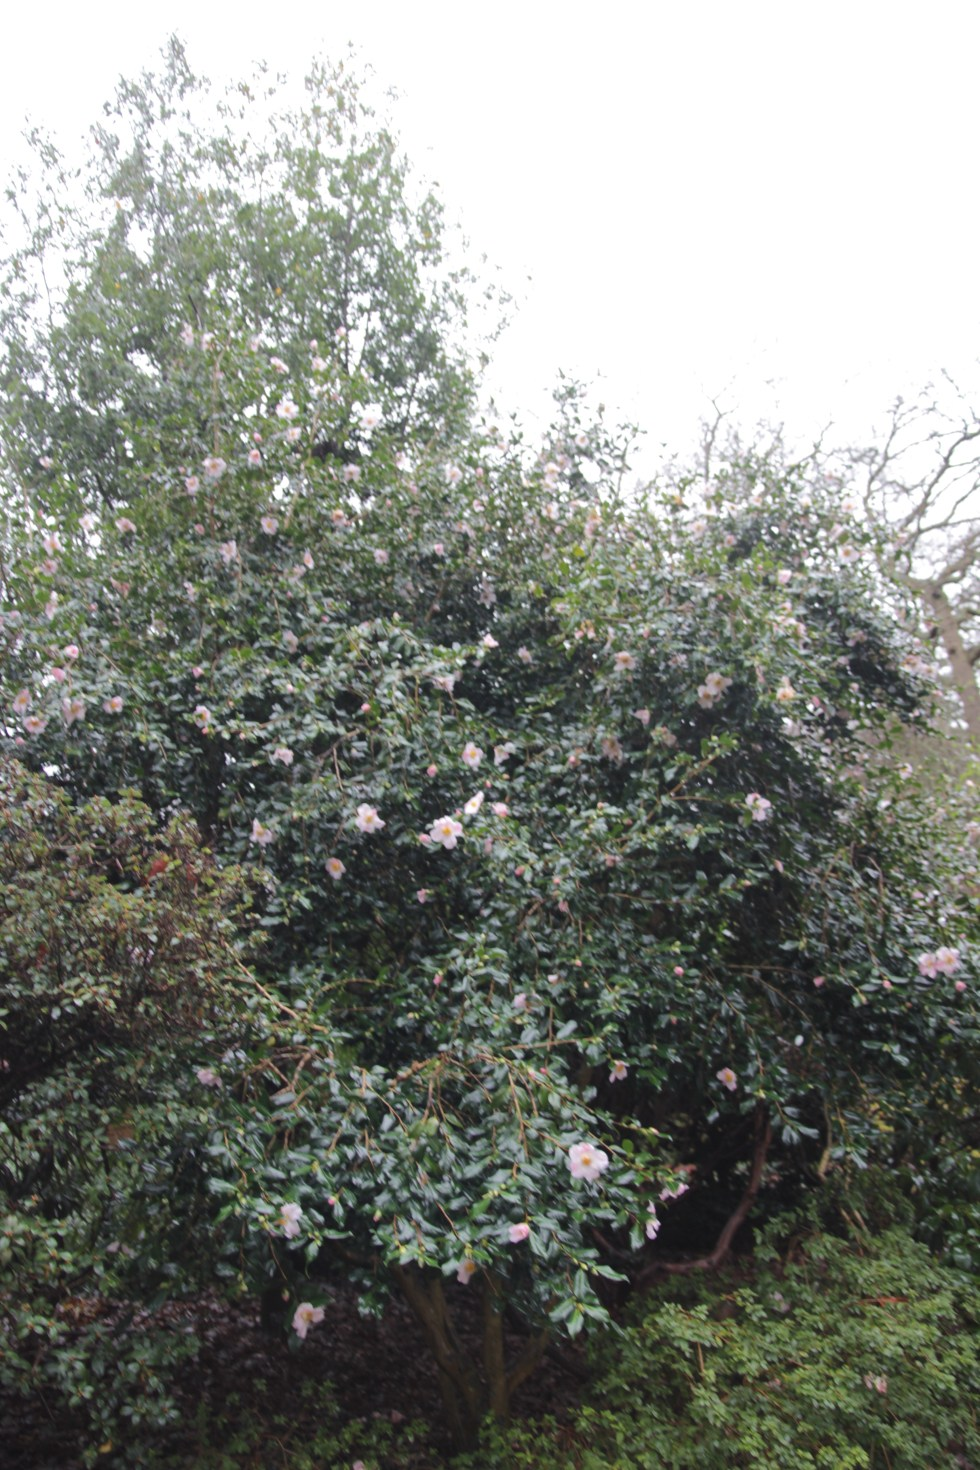 camellia x williamsii j c williams Plant of the week  Camellia x williamsii 'J C Williams'